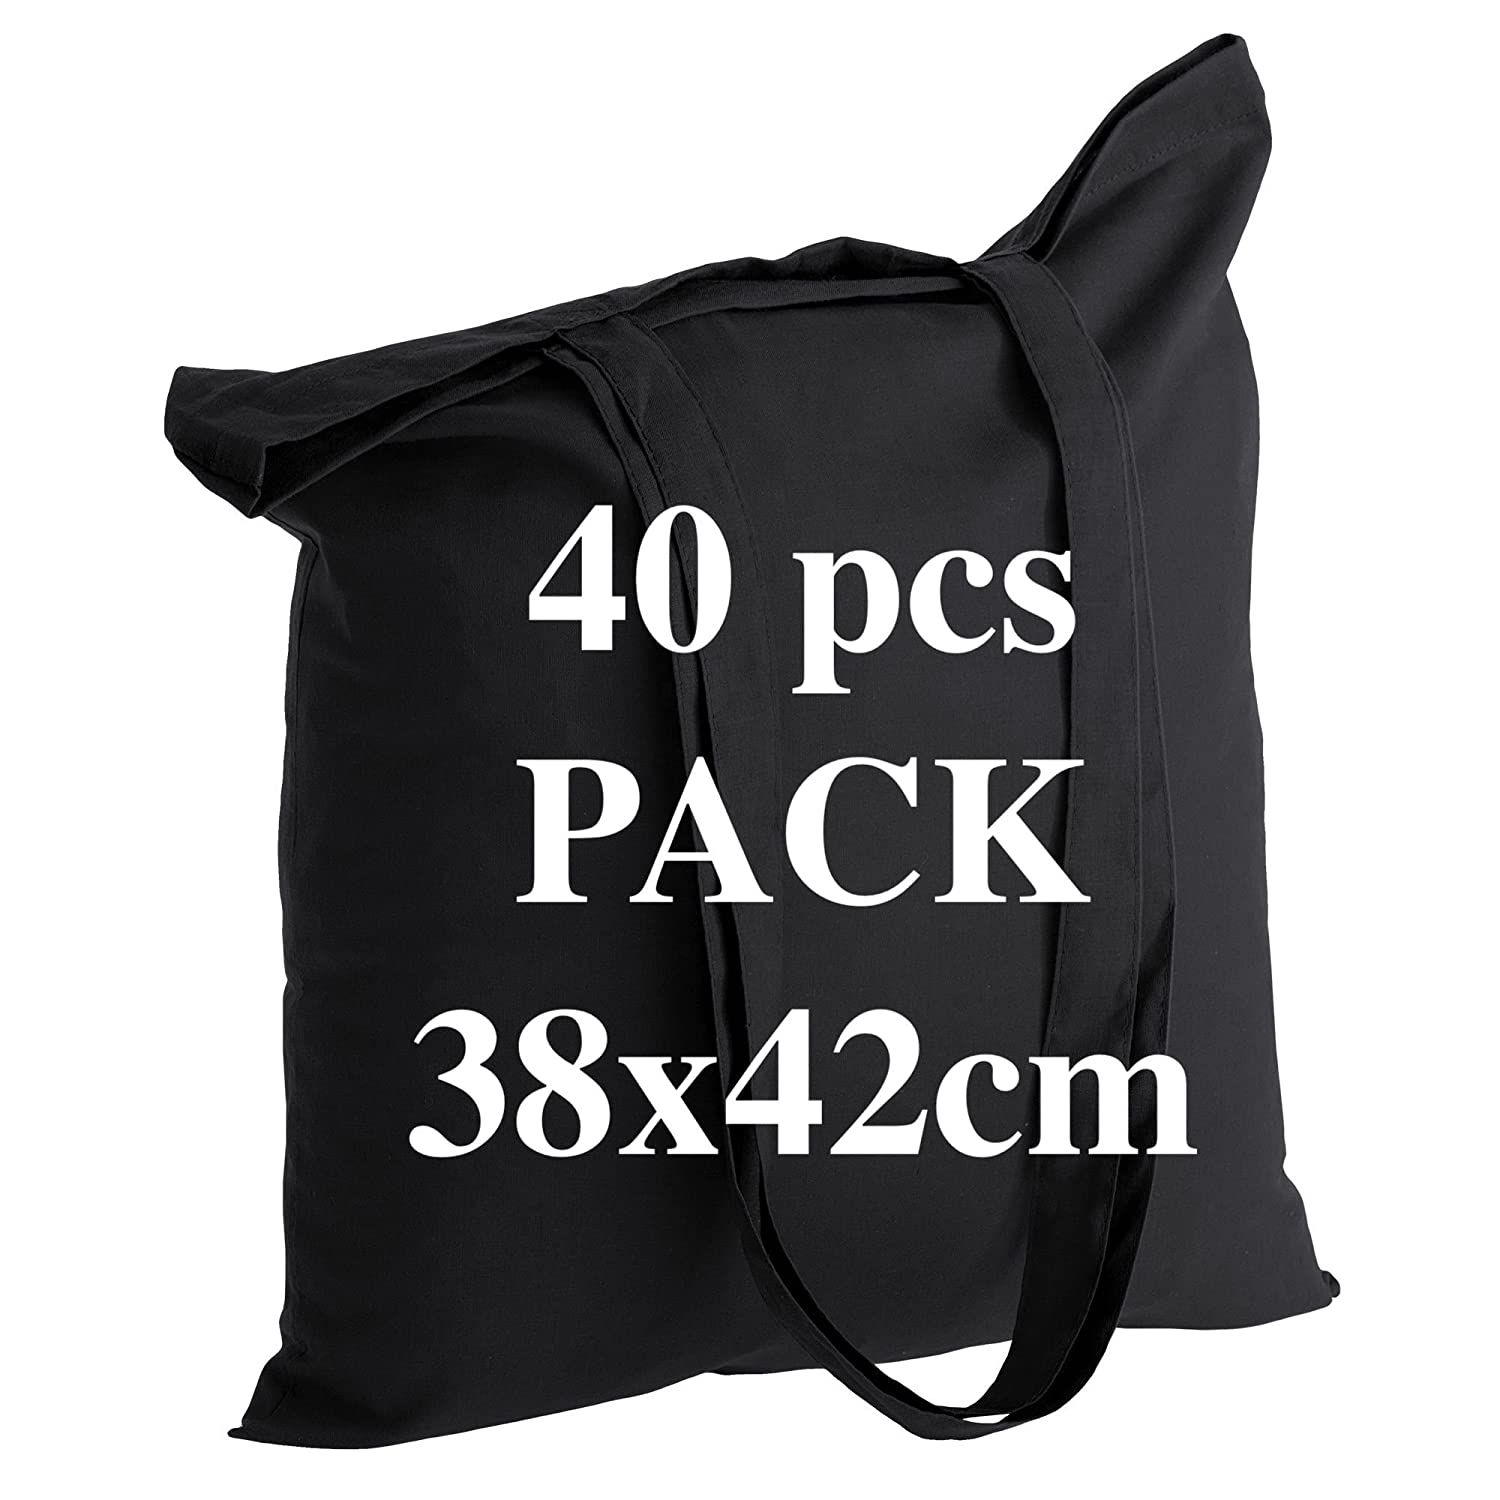 Quality 10 Cotton Black Shopping Tote Bags 38x42 cm Long Handles 70 cm 100% Cotton 5oz. The Most Popular Model for Printing and Decorating. ECO BAGS